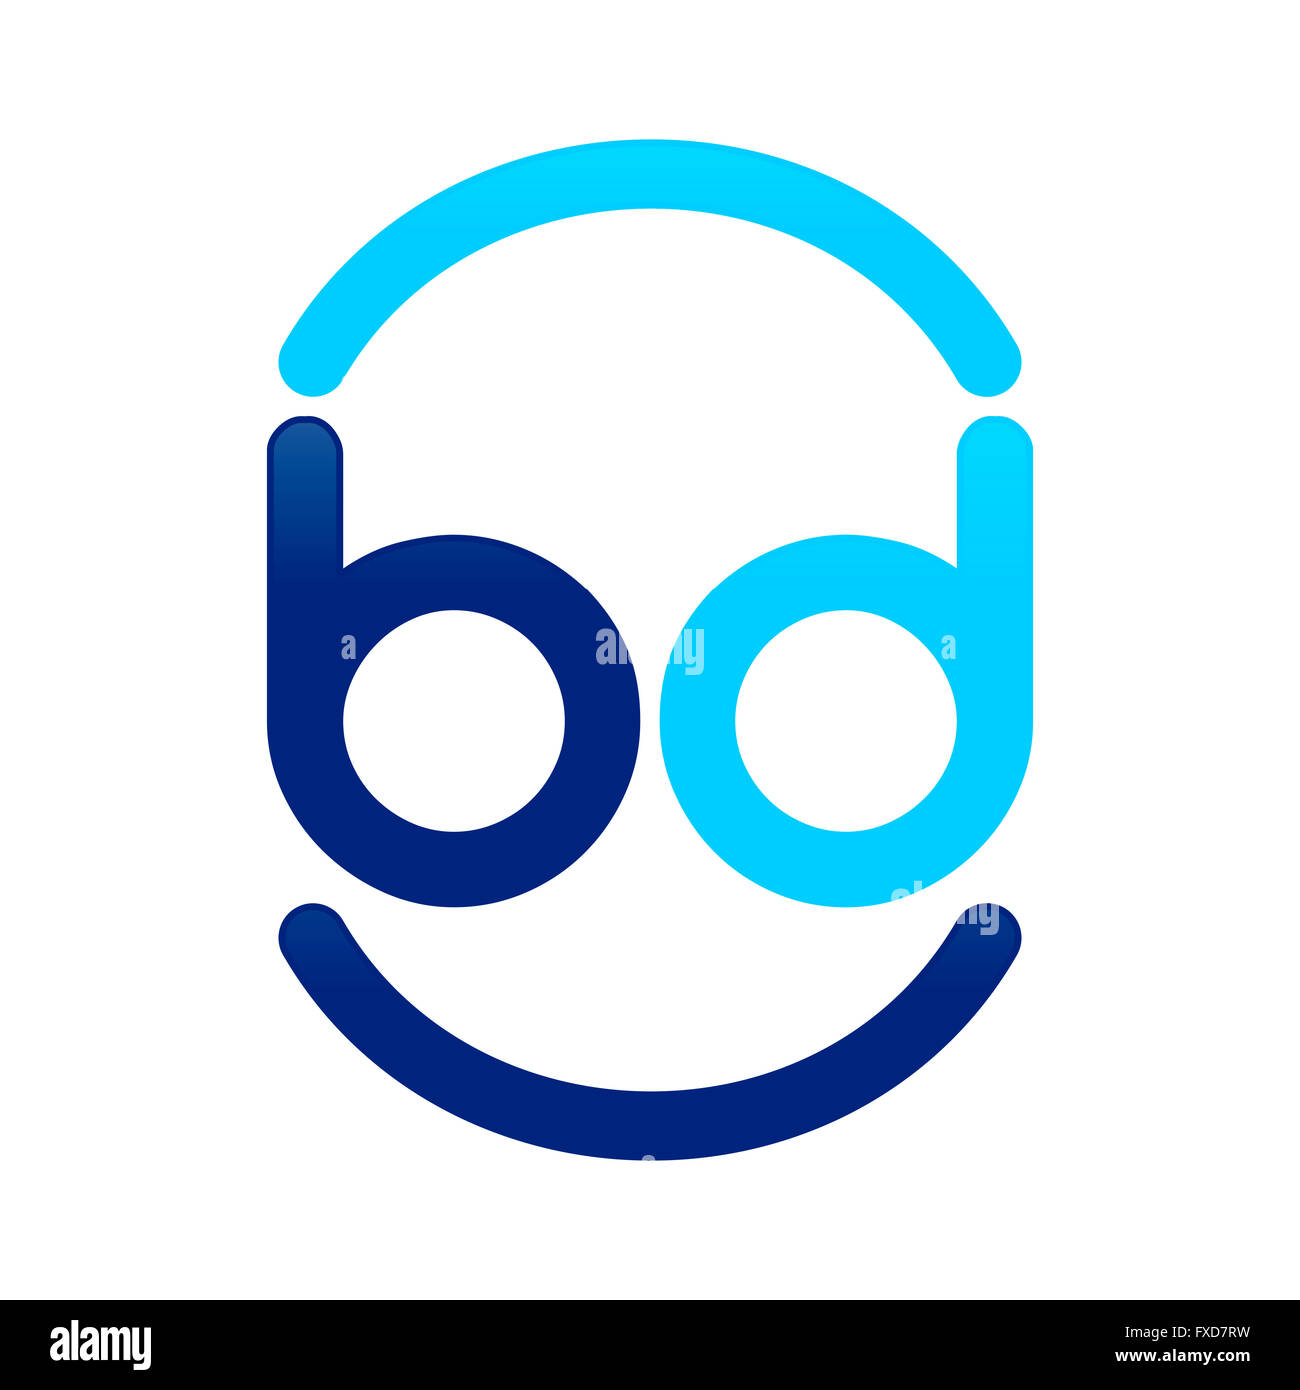 Initial BD Logo Design Stock Photo: 102324429